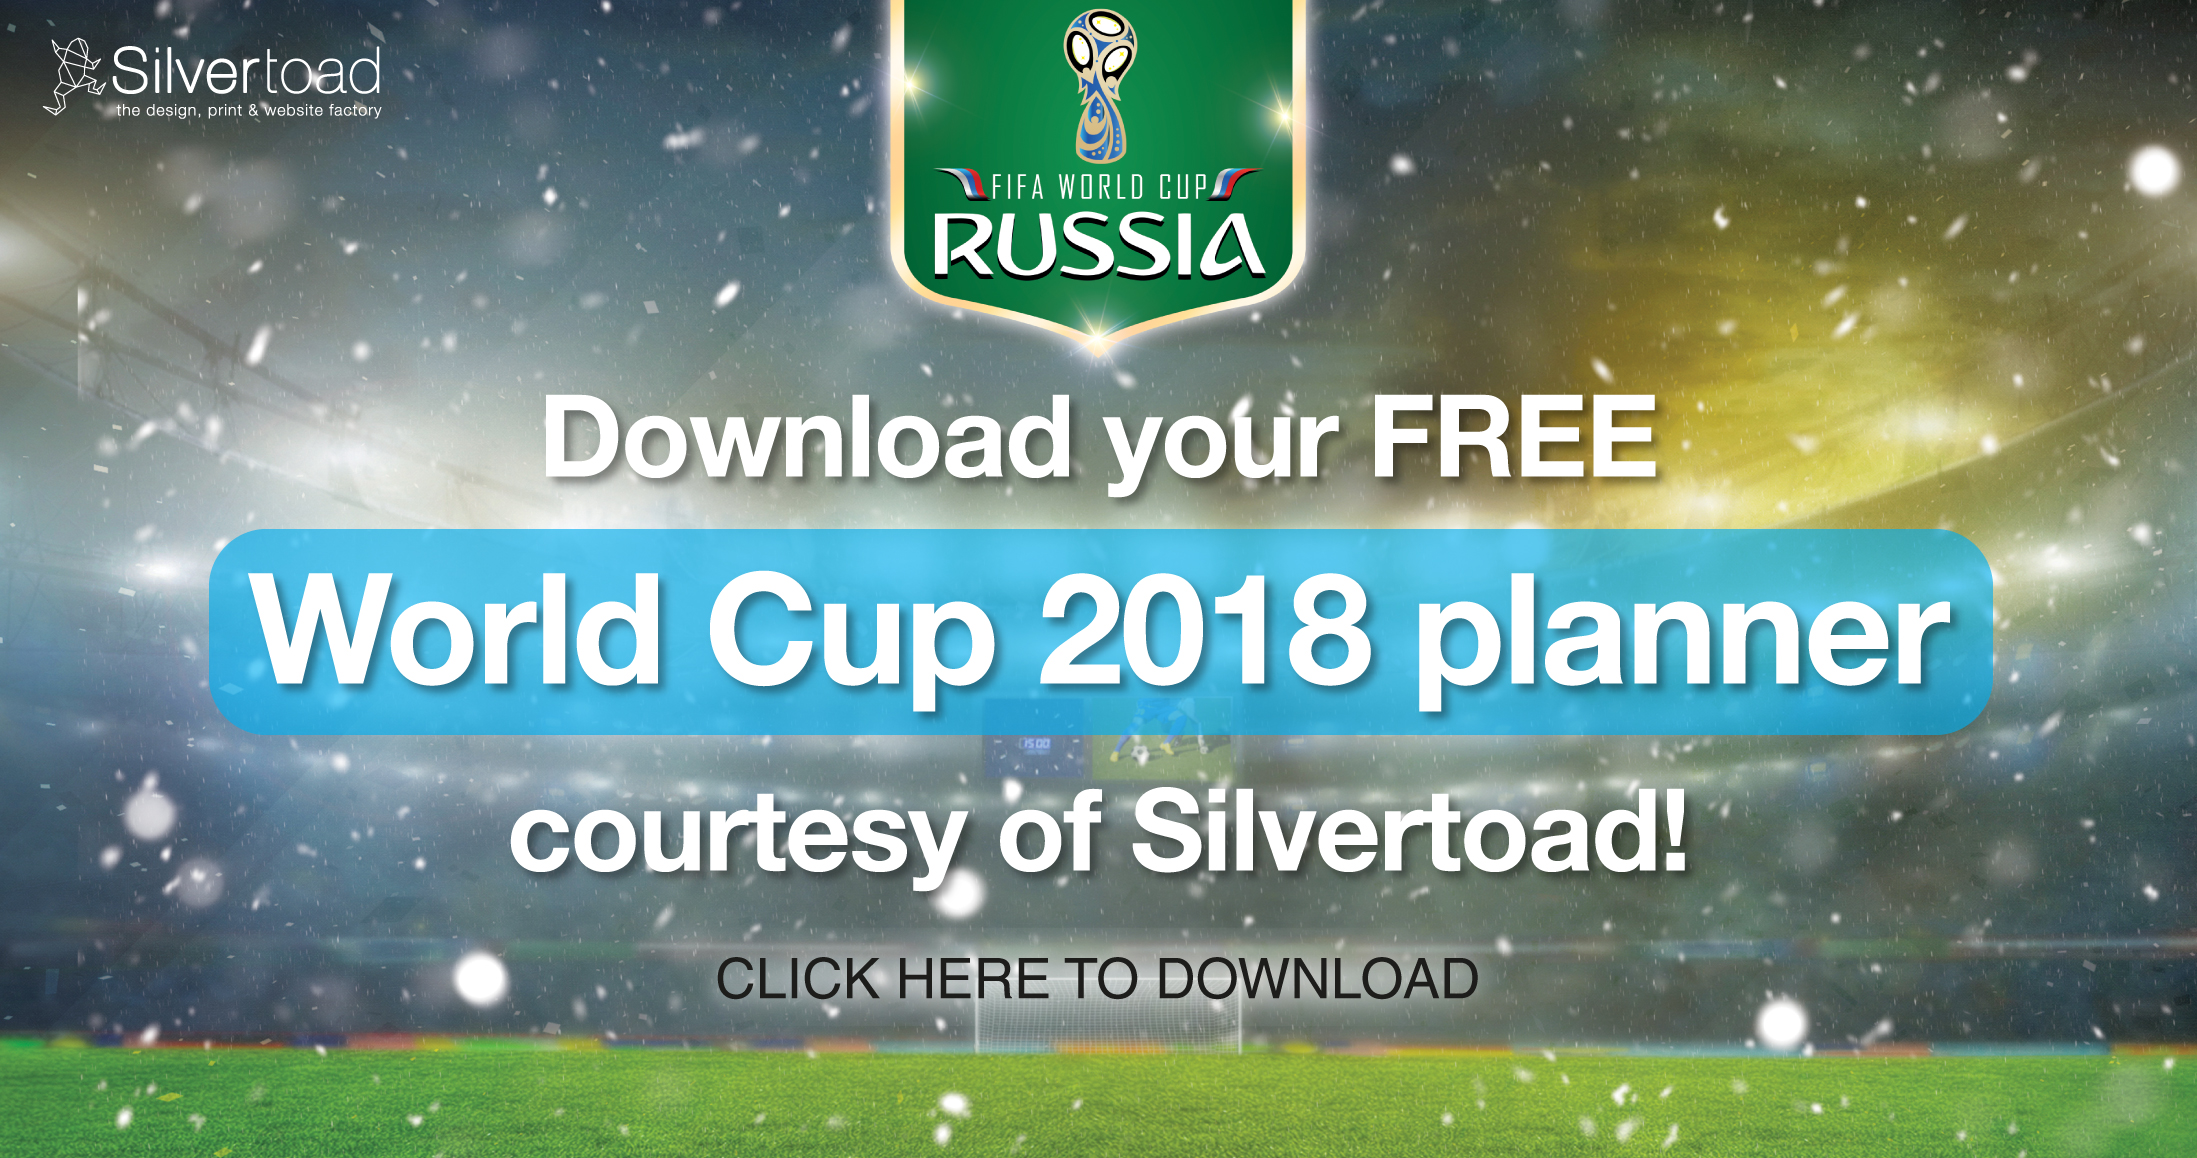 000028-Free-Wall-World-Cup-Planner-1